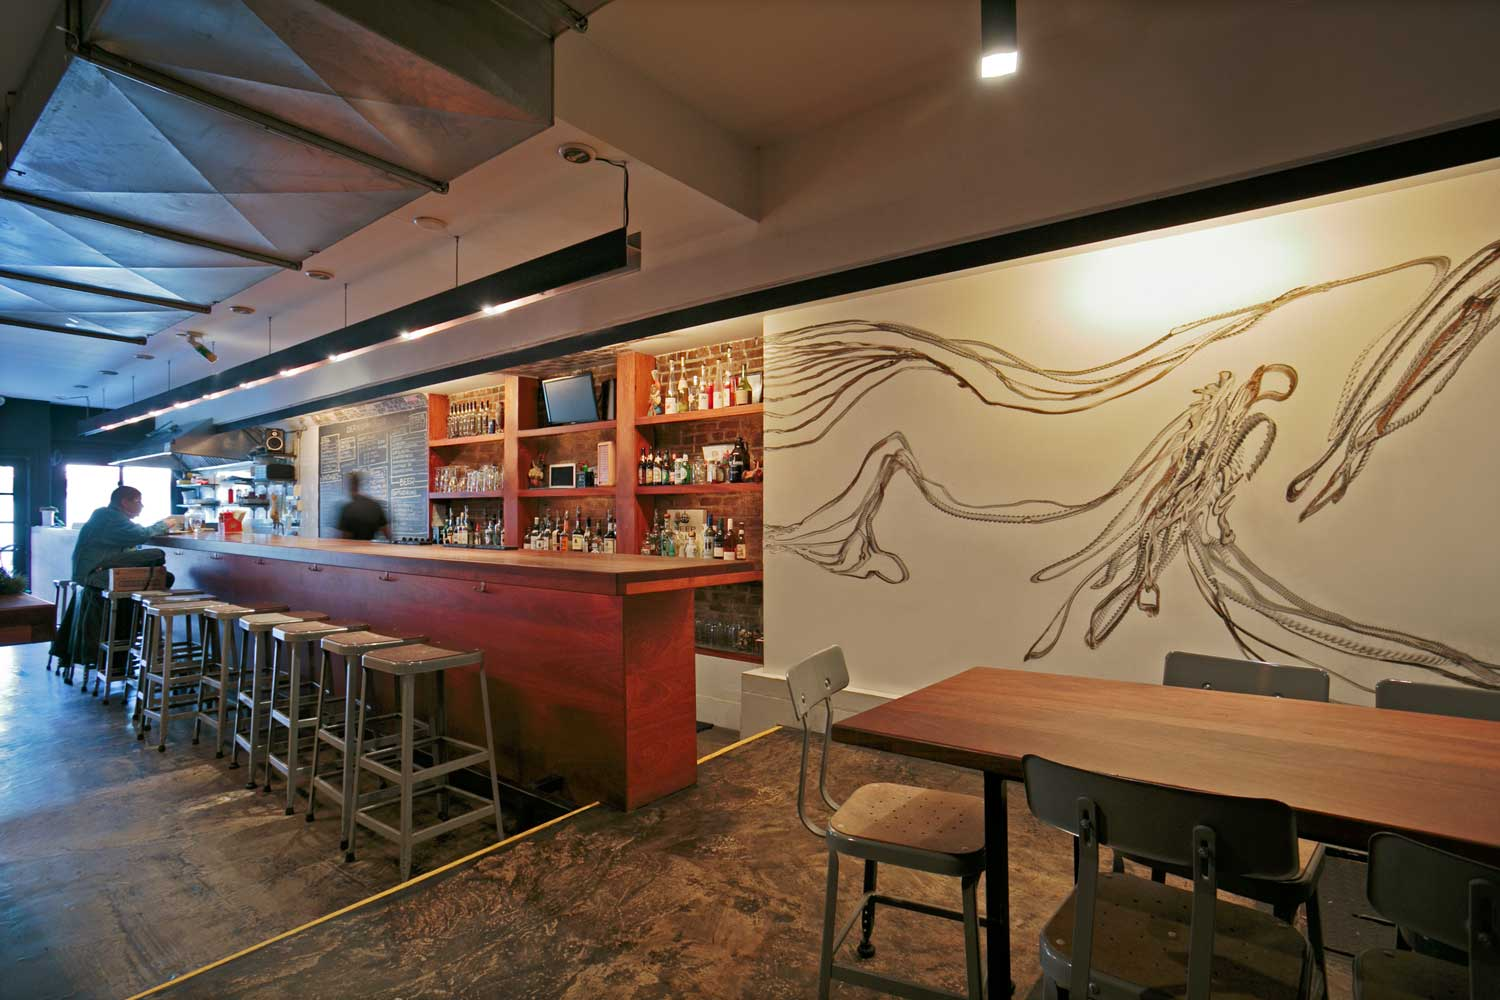 Brooklyn bar and eatery designed by OCV Architects.